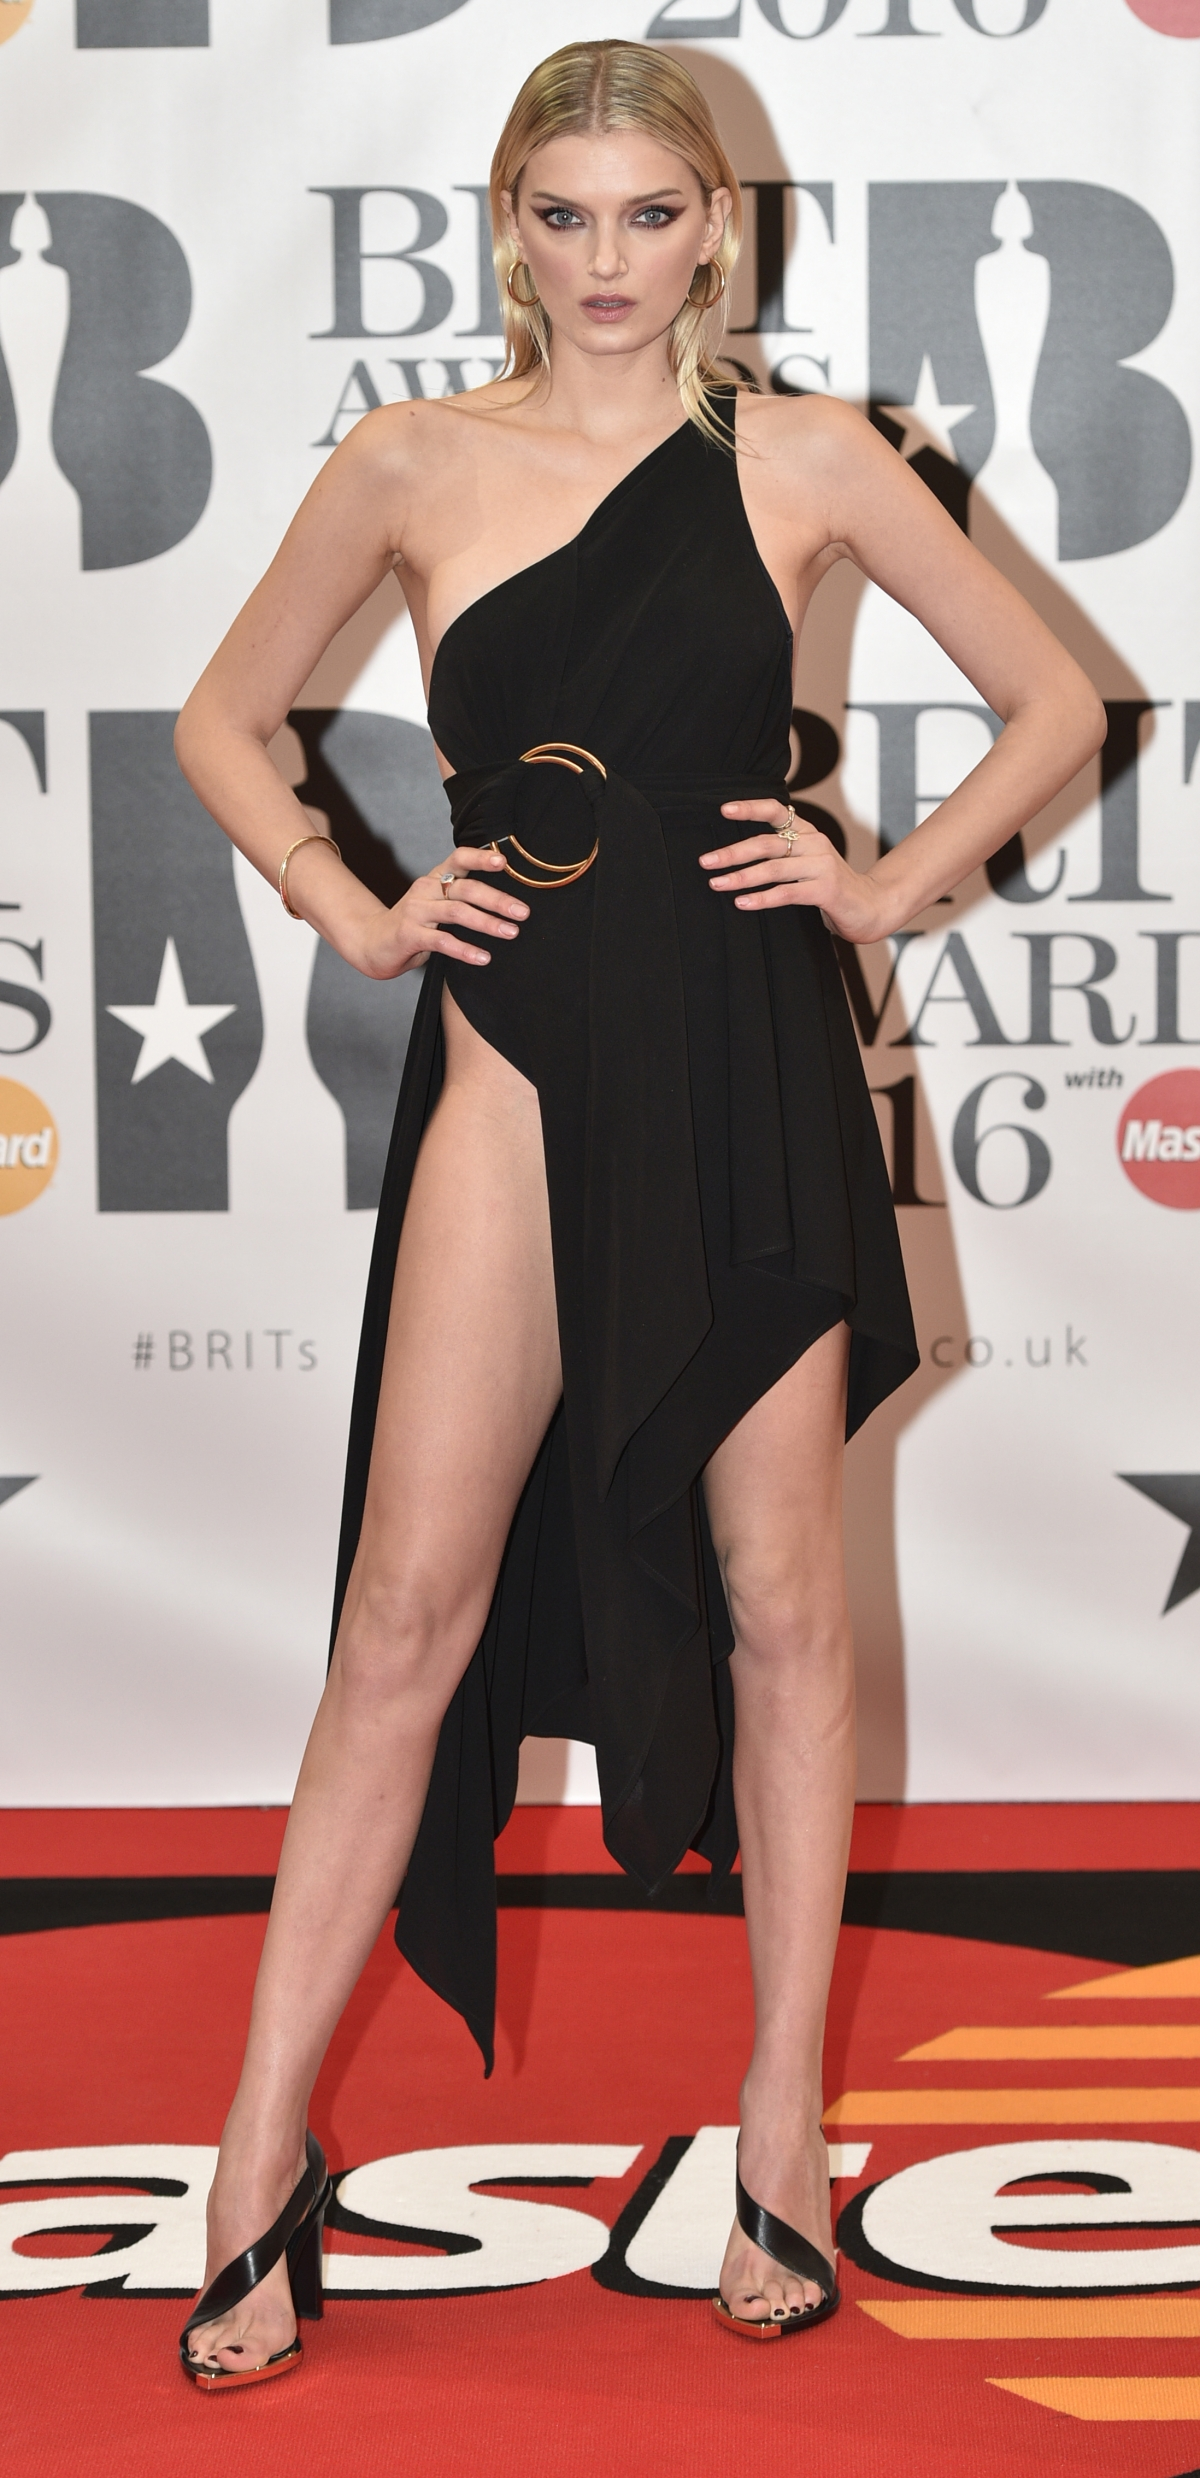 BRIT awards memorable looks